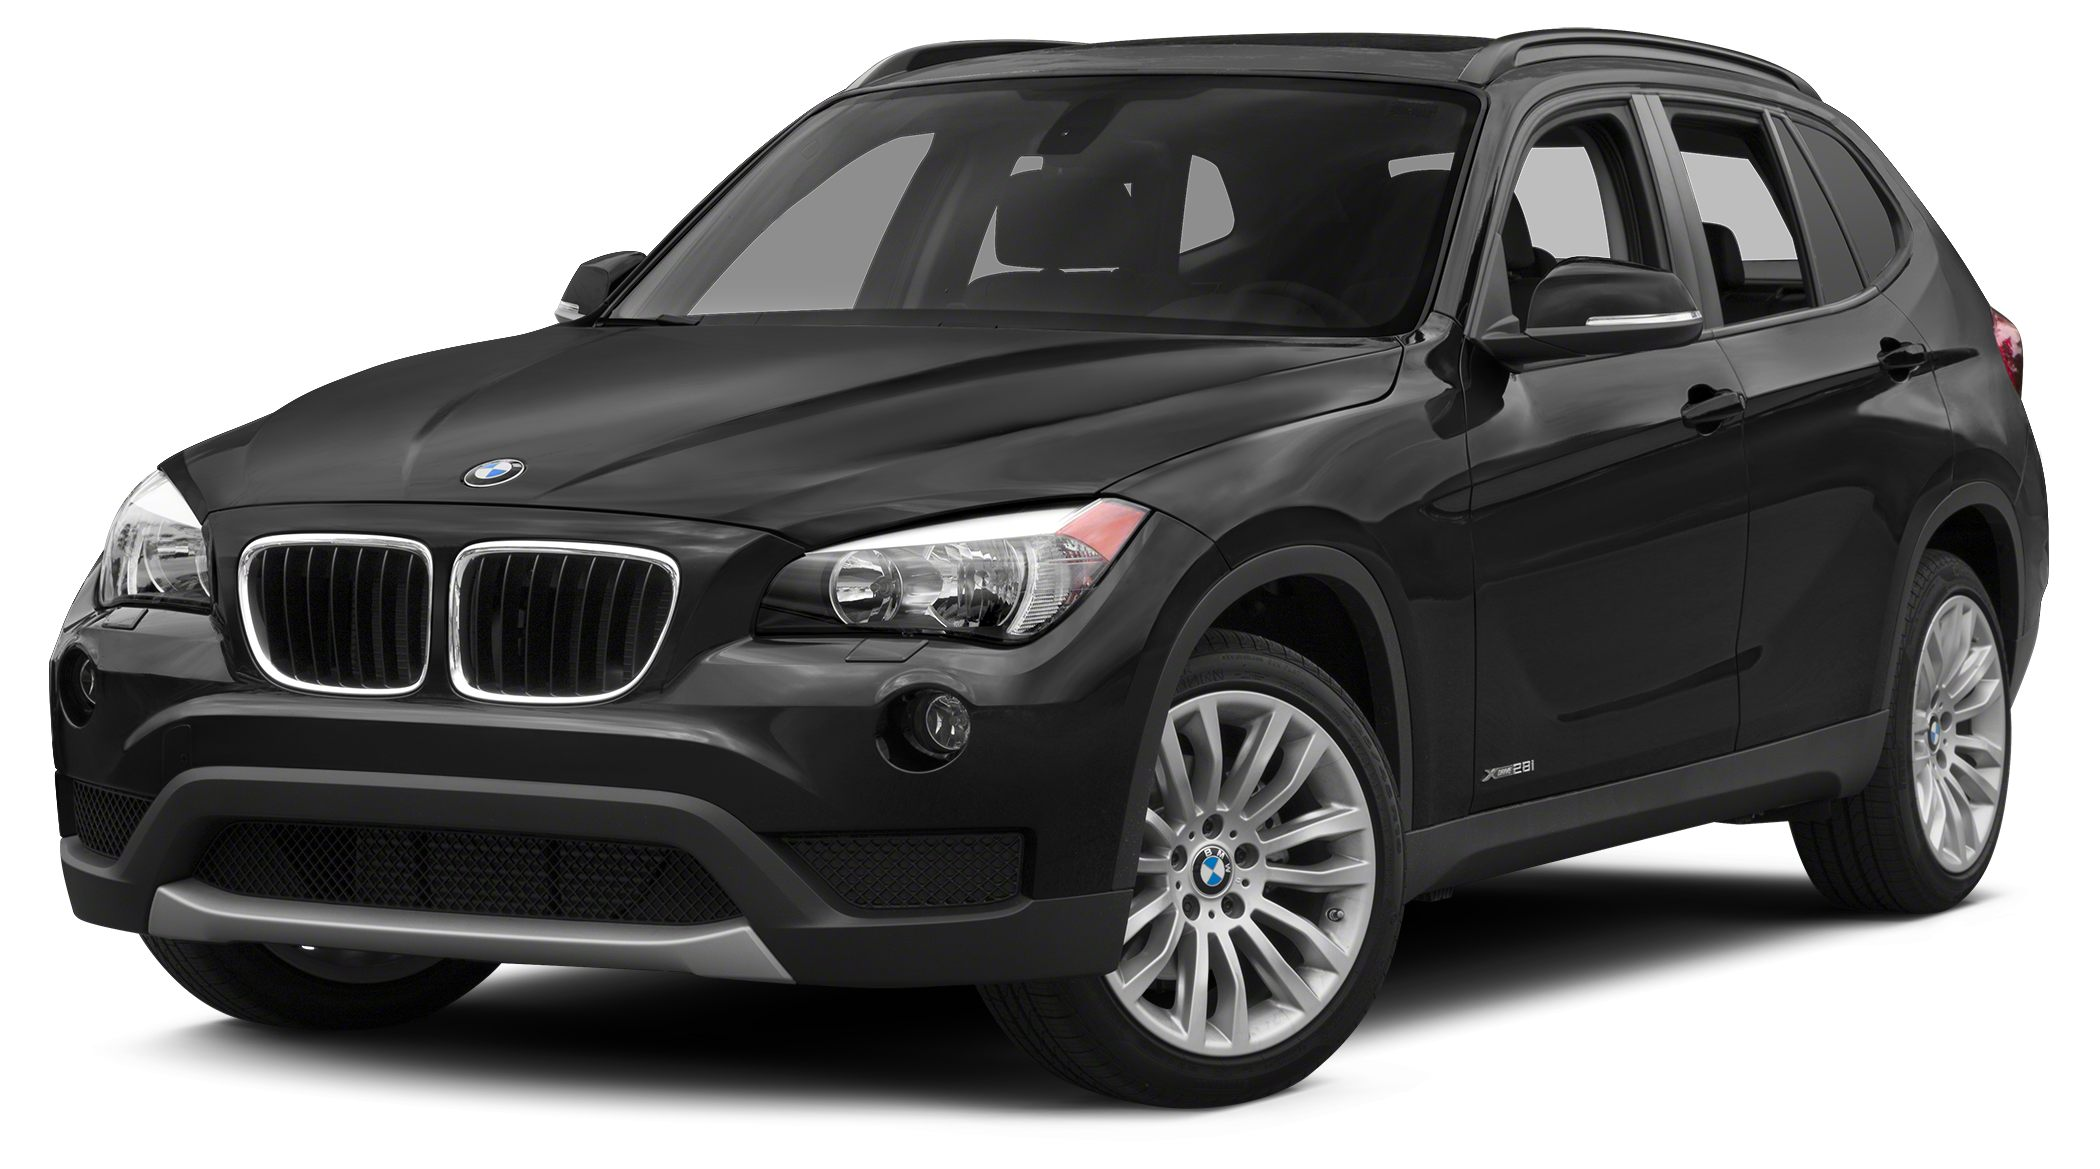 2014 BMW X1 xDrive28i Vehicle Detailed Recent Oil Change and Passed Dealer Inspection Get a gri